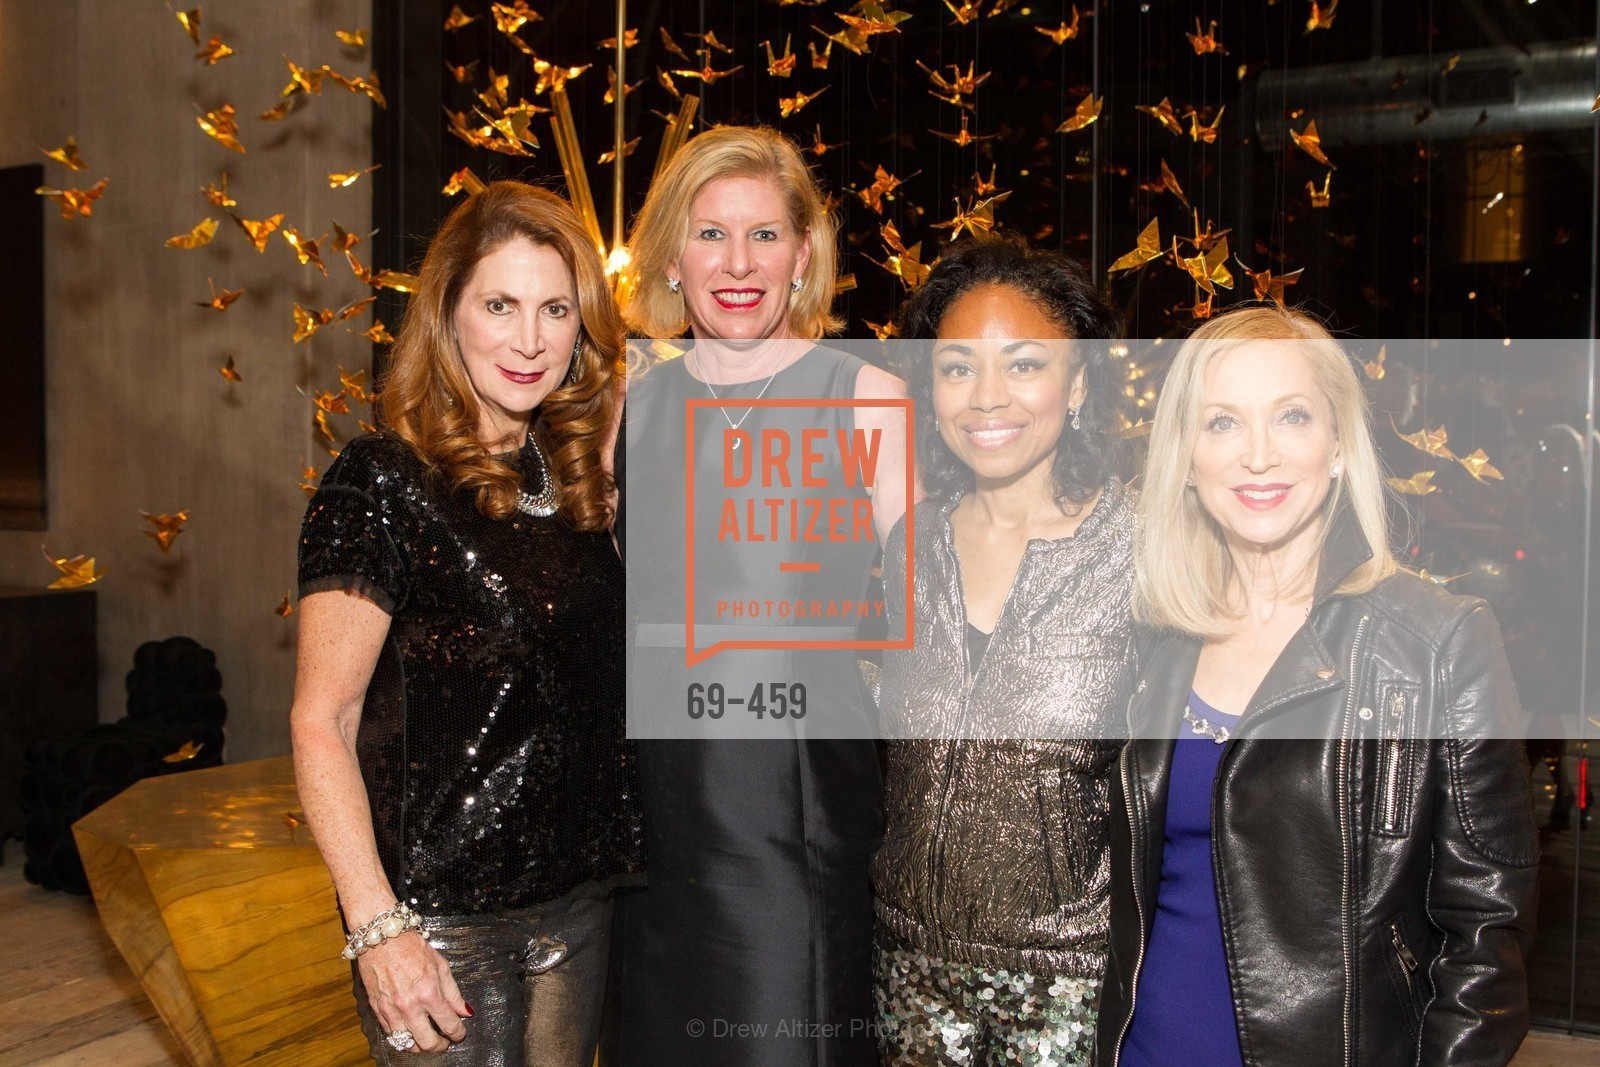 Patricia Ferrin Loucks, Jennifer Brandenburg, Tanya Powell, Shelley Gordon, 2014 SAN FRANCISCO BALLET OPENING NIGHT GALA Patron and Sponsor Reception, US. US, January 14th, 2014,Drew Altizer, Drew Altizer Photography, full-service agency, private events, San Francisco photographer, photographer california